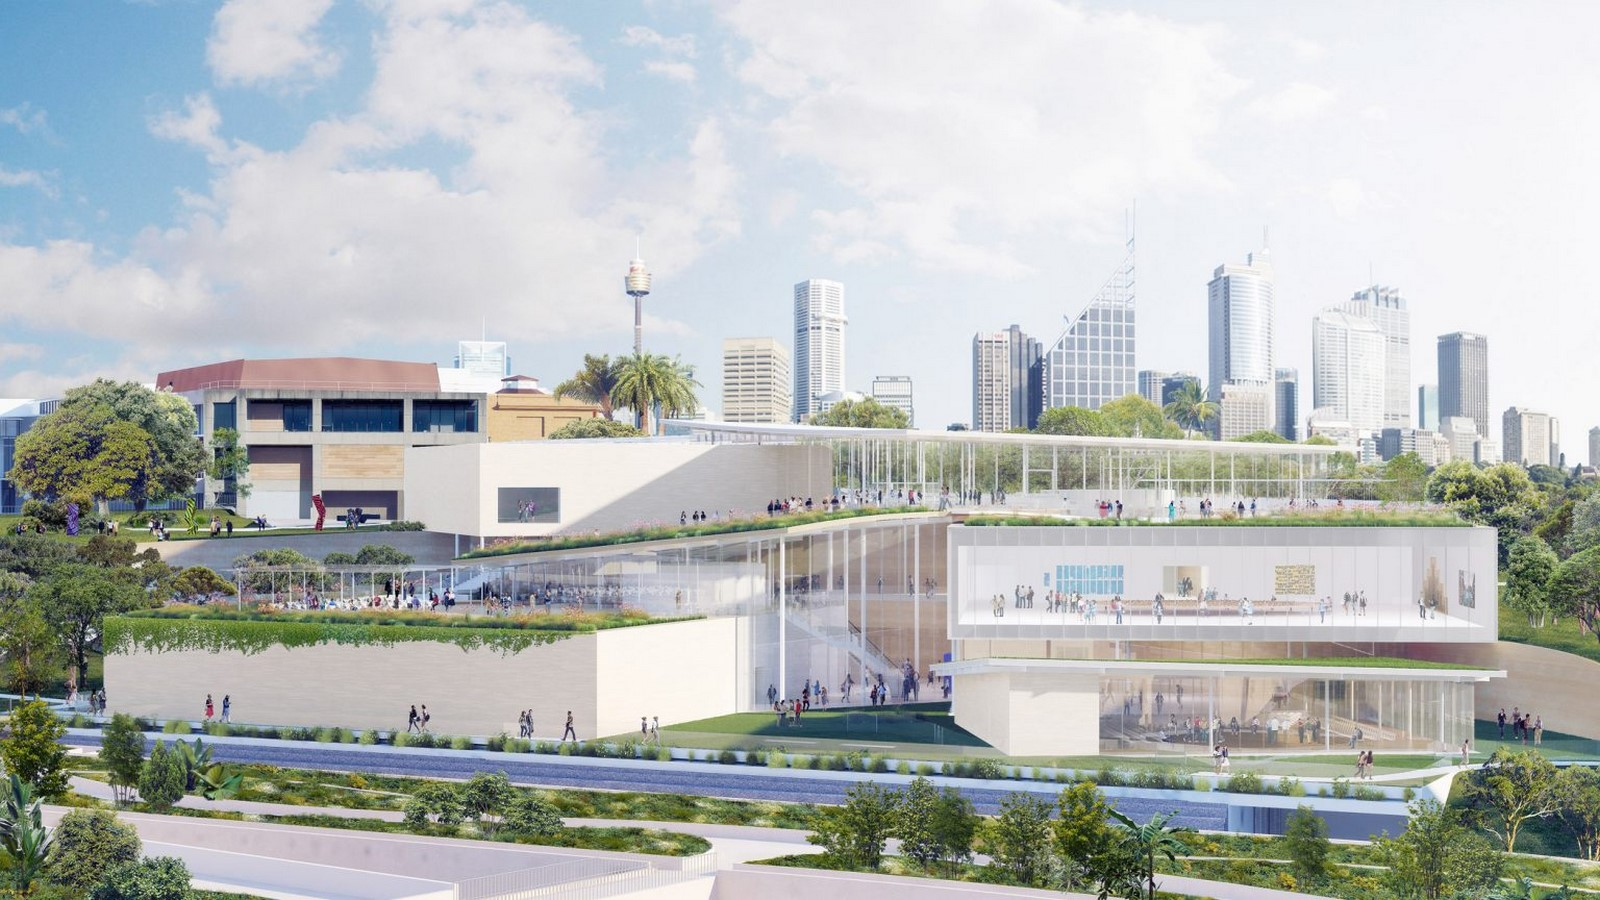 New Images For Art Gallery Of South Wales Expansion In Sydney revealed by SANAA - Sheet1